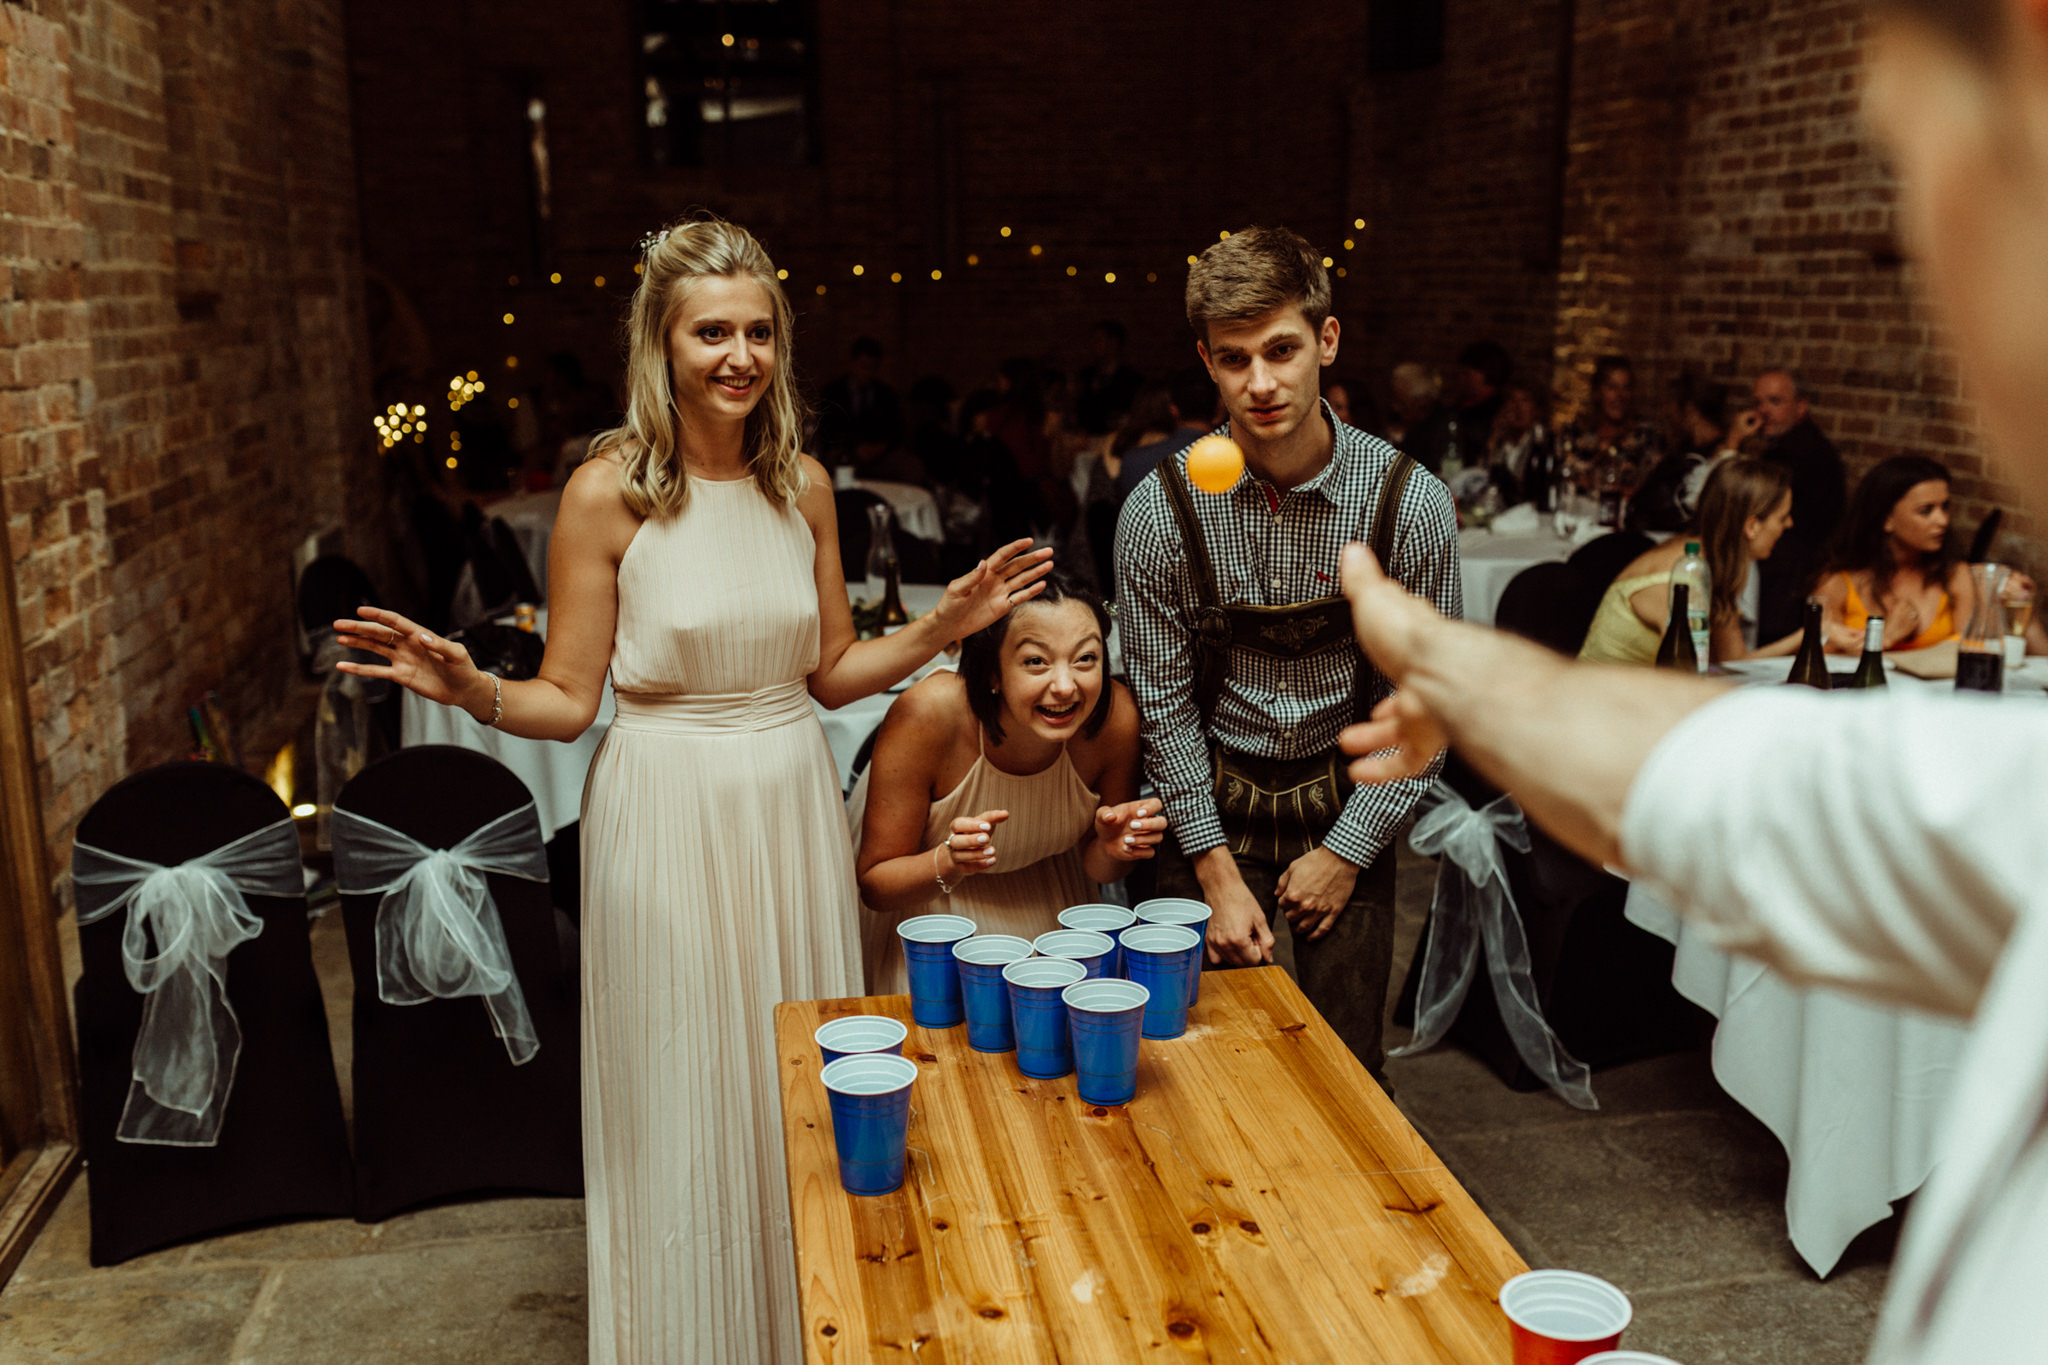 beer pong wedding reception ideas